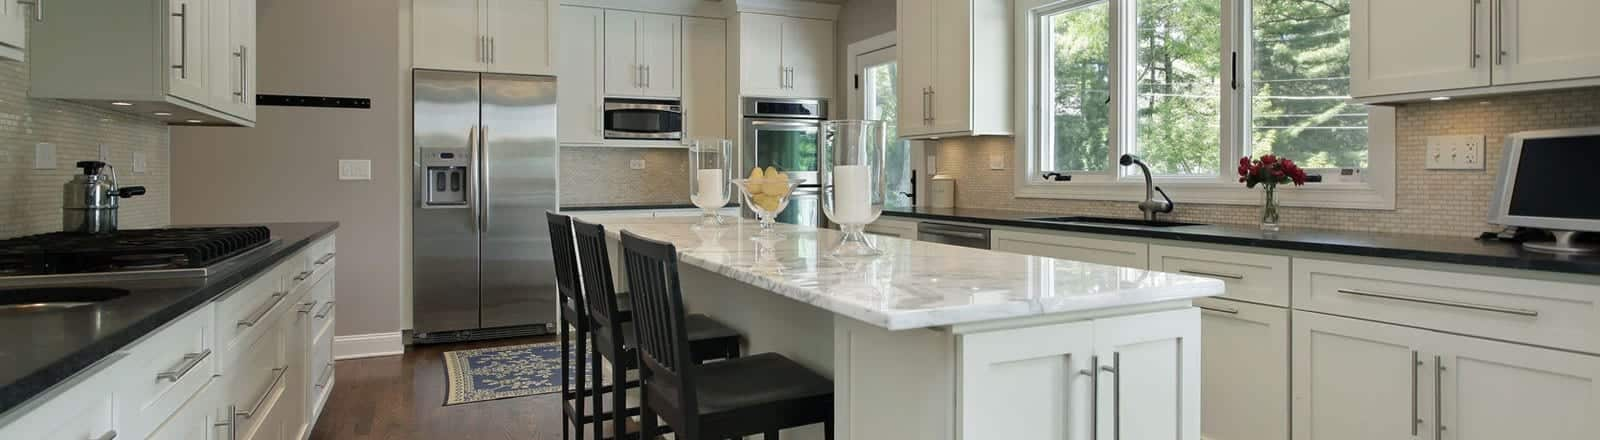 Designer Surfaces | Granite, Corian, Quartz Countertops